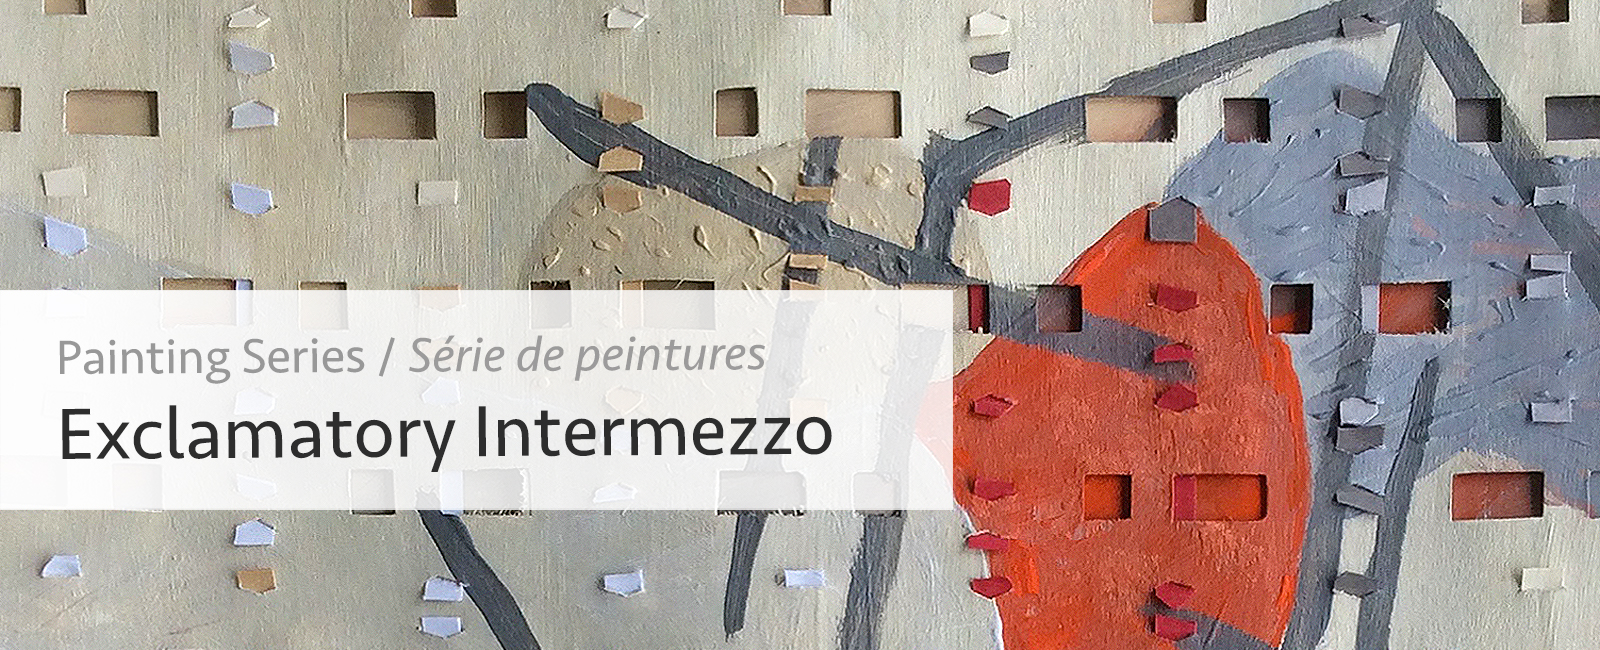 Abstract Painting Series Exclamatory Intermezzo